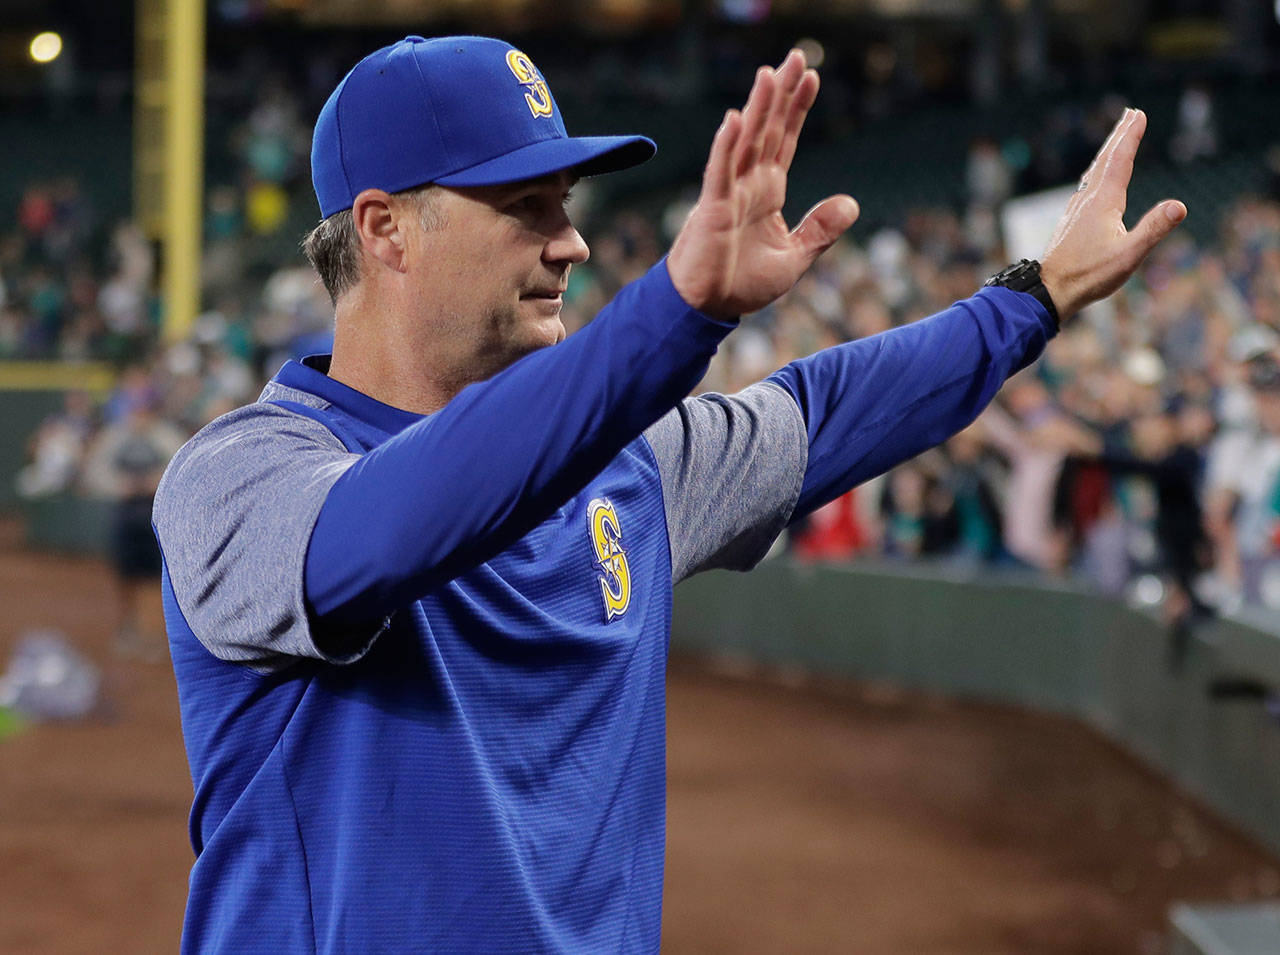 Mariners manager Scott Servais waves to fans after a game against the Rangers on Sept. 30, 2018, in Seattle. (AP Photo/Ted S. Warren)